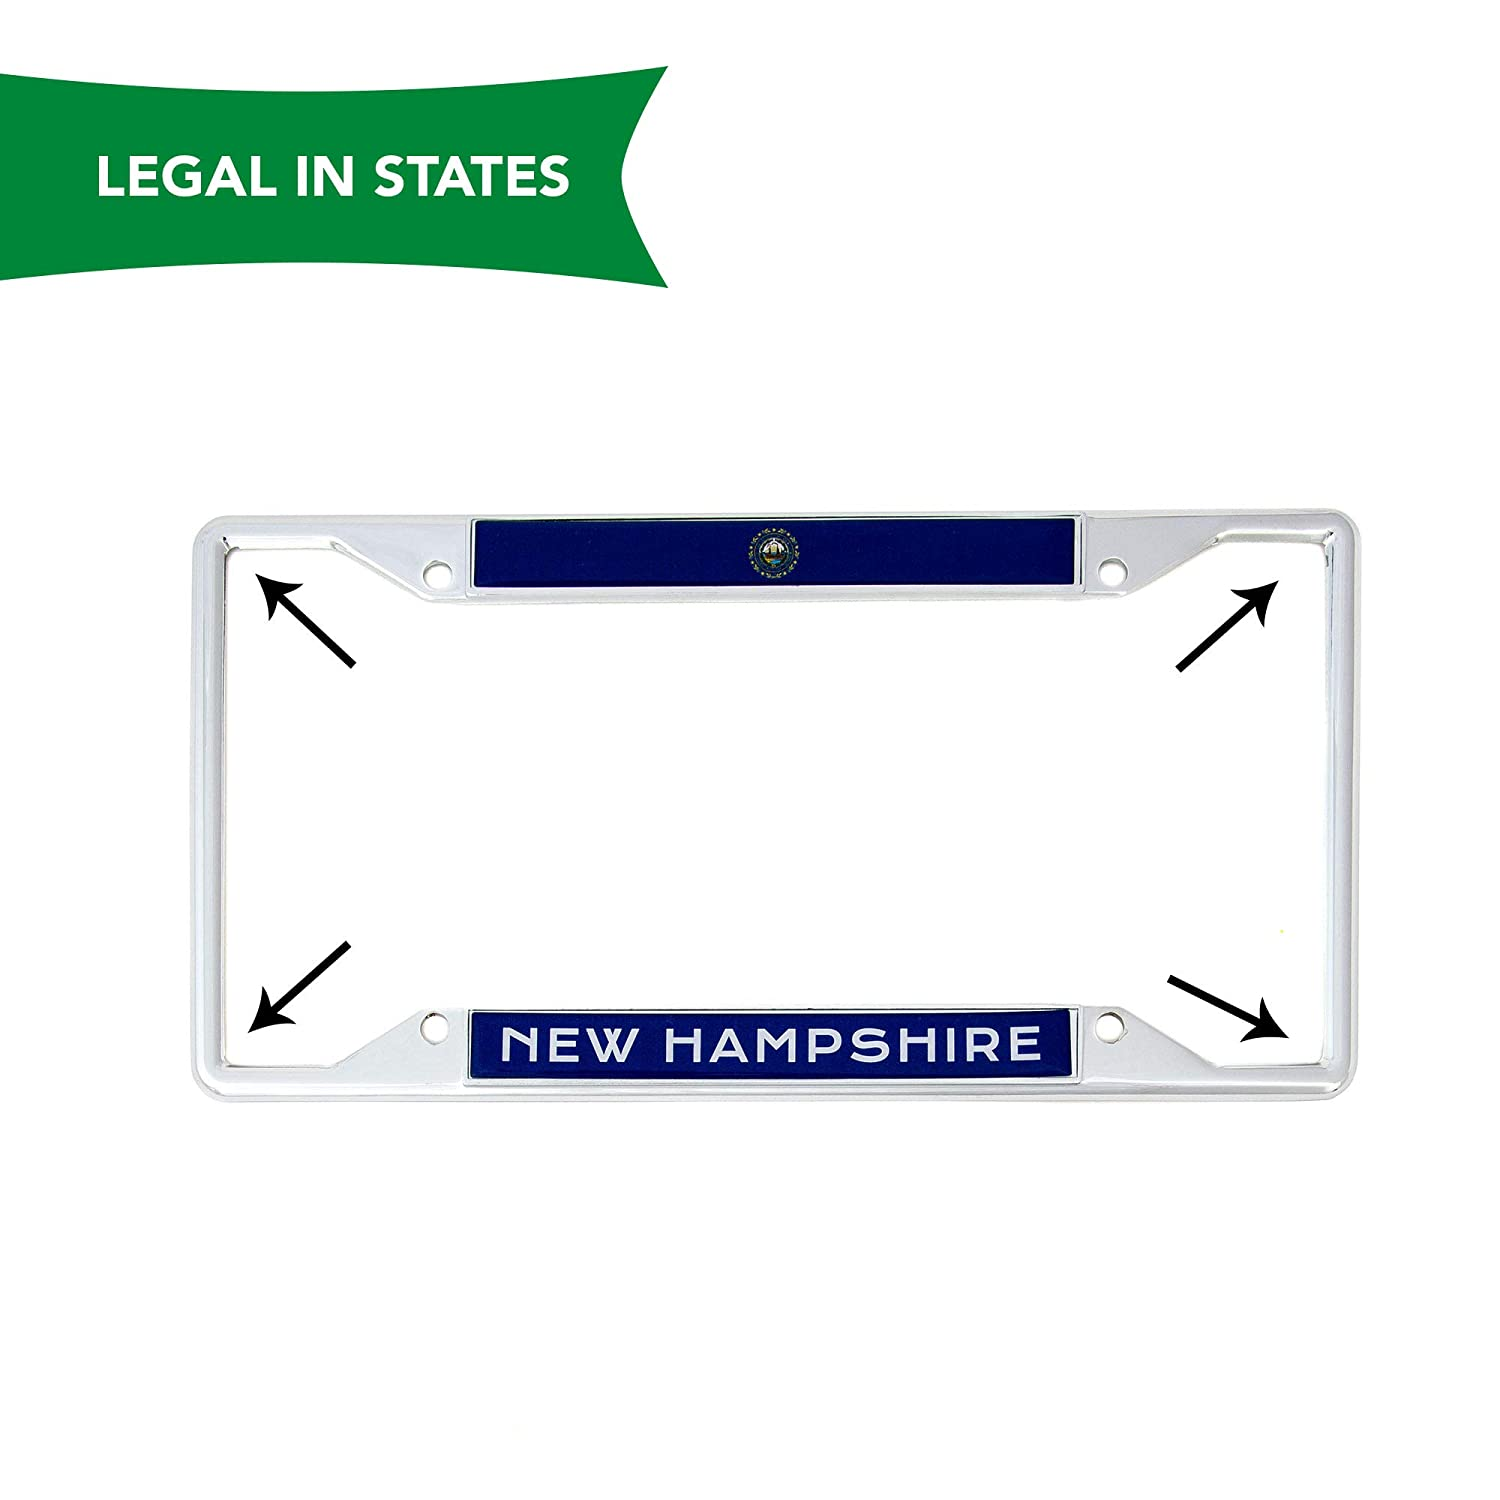 Desert Cactus State of New Hampshire Flag License Plate Frame for Front Back of Car Vehicle Truck